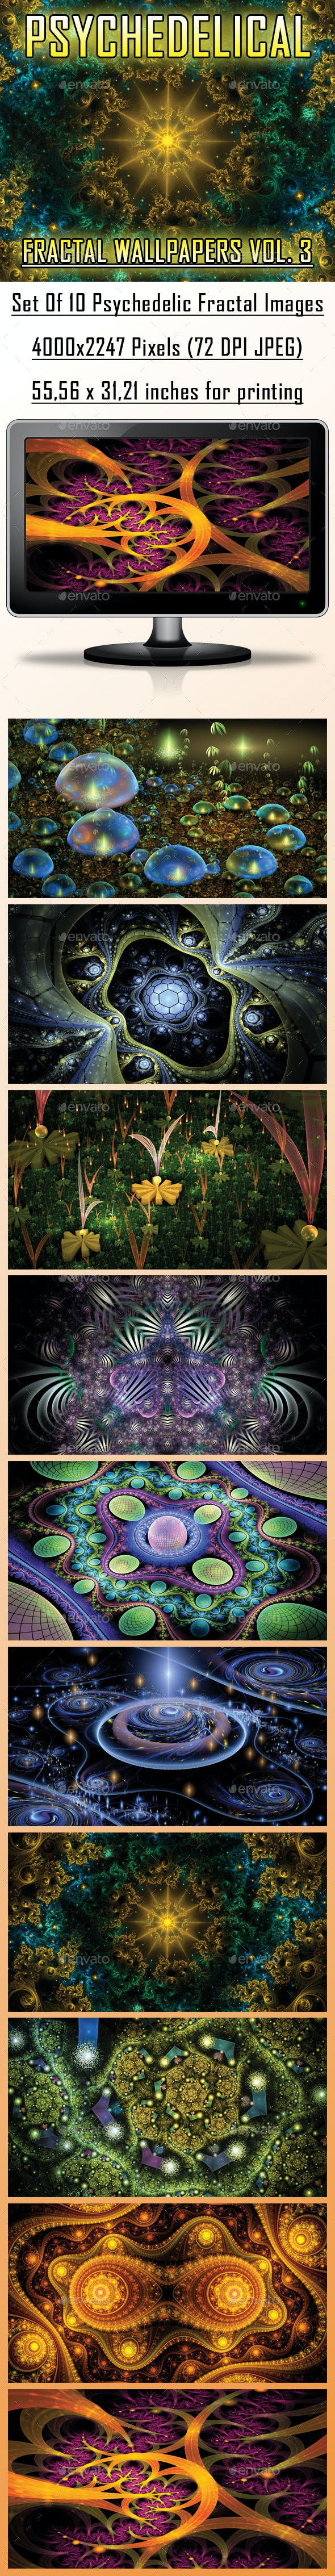 HD Psychedelic Fractal Wallpapers Vol. 3 - Abstract Backgrounds